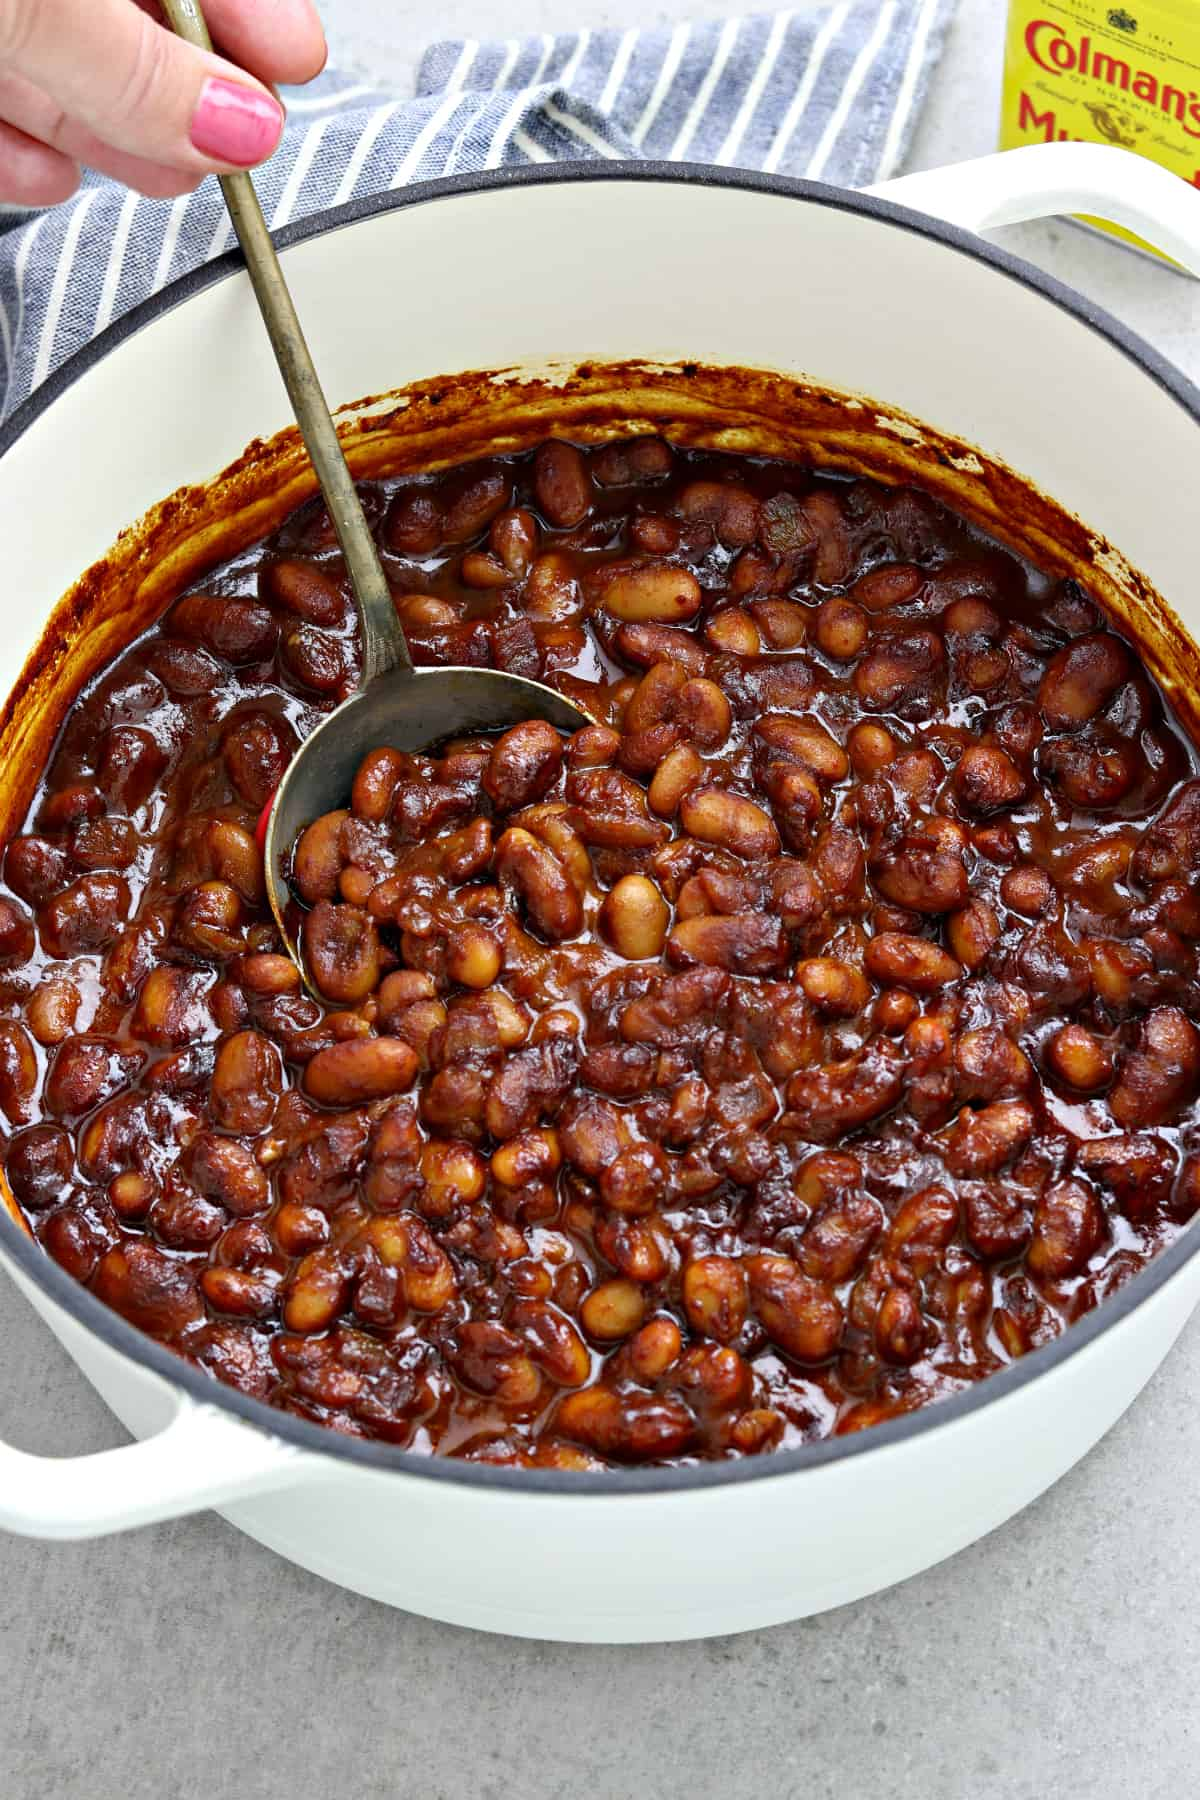 overhead view of baked beans in a white pot. Hand holding spoon and stirring beans.